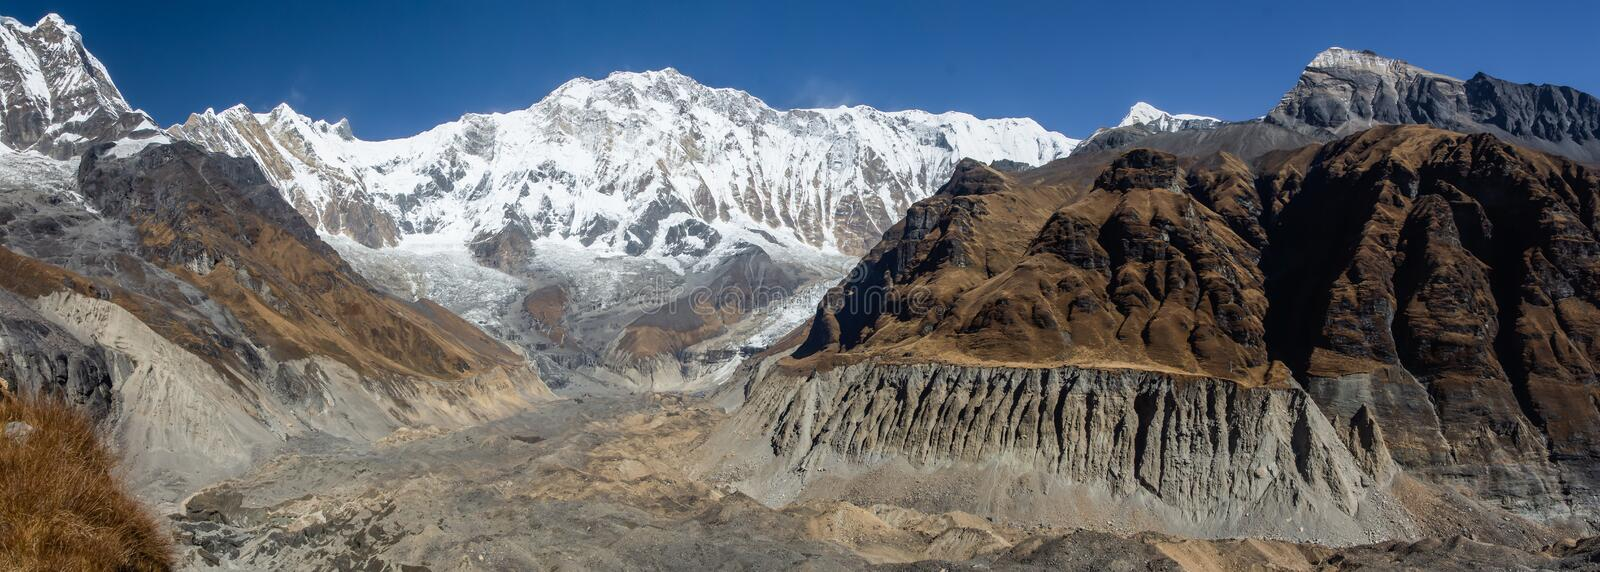 Panorama of Annapurna 1 and its glacier with clear blue sky, Himalayas royalty free stock photo